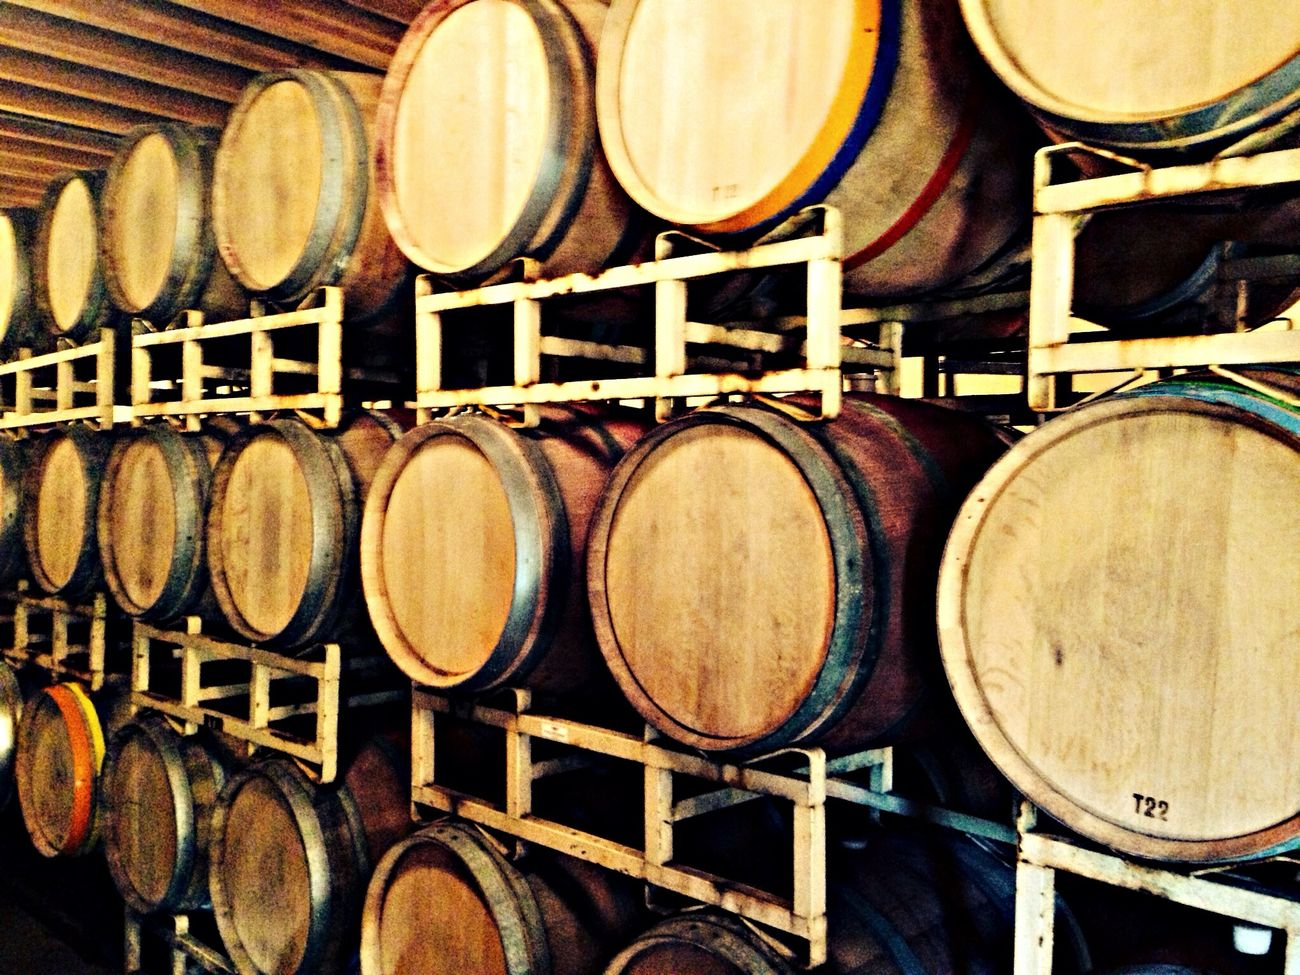 Barrels of fun.